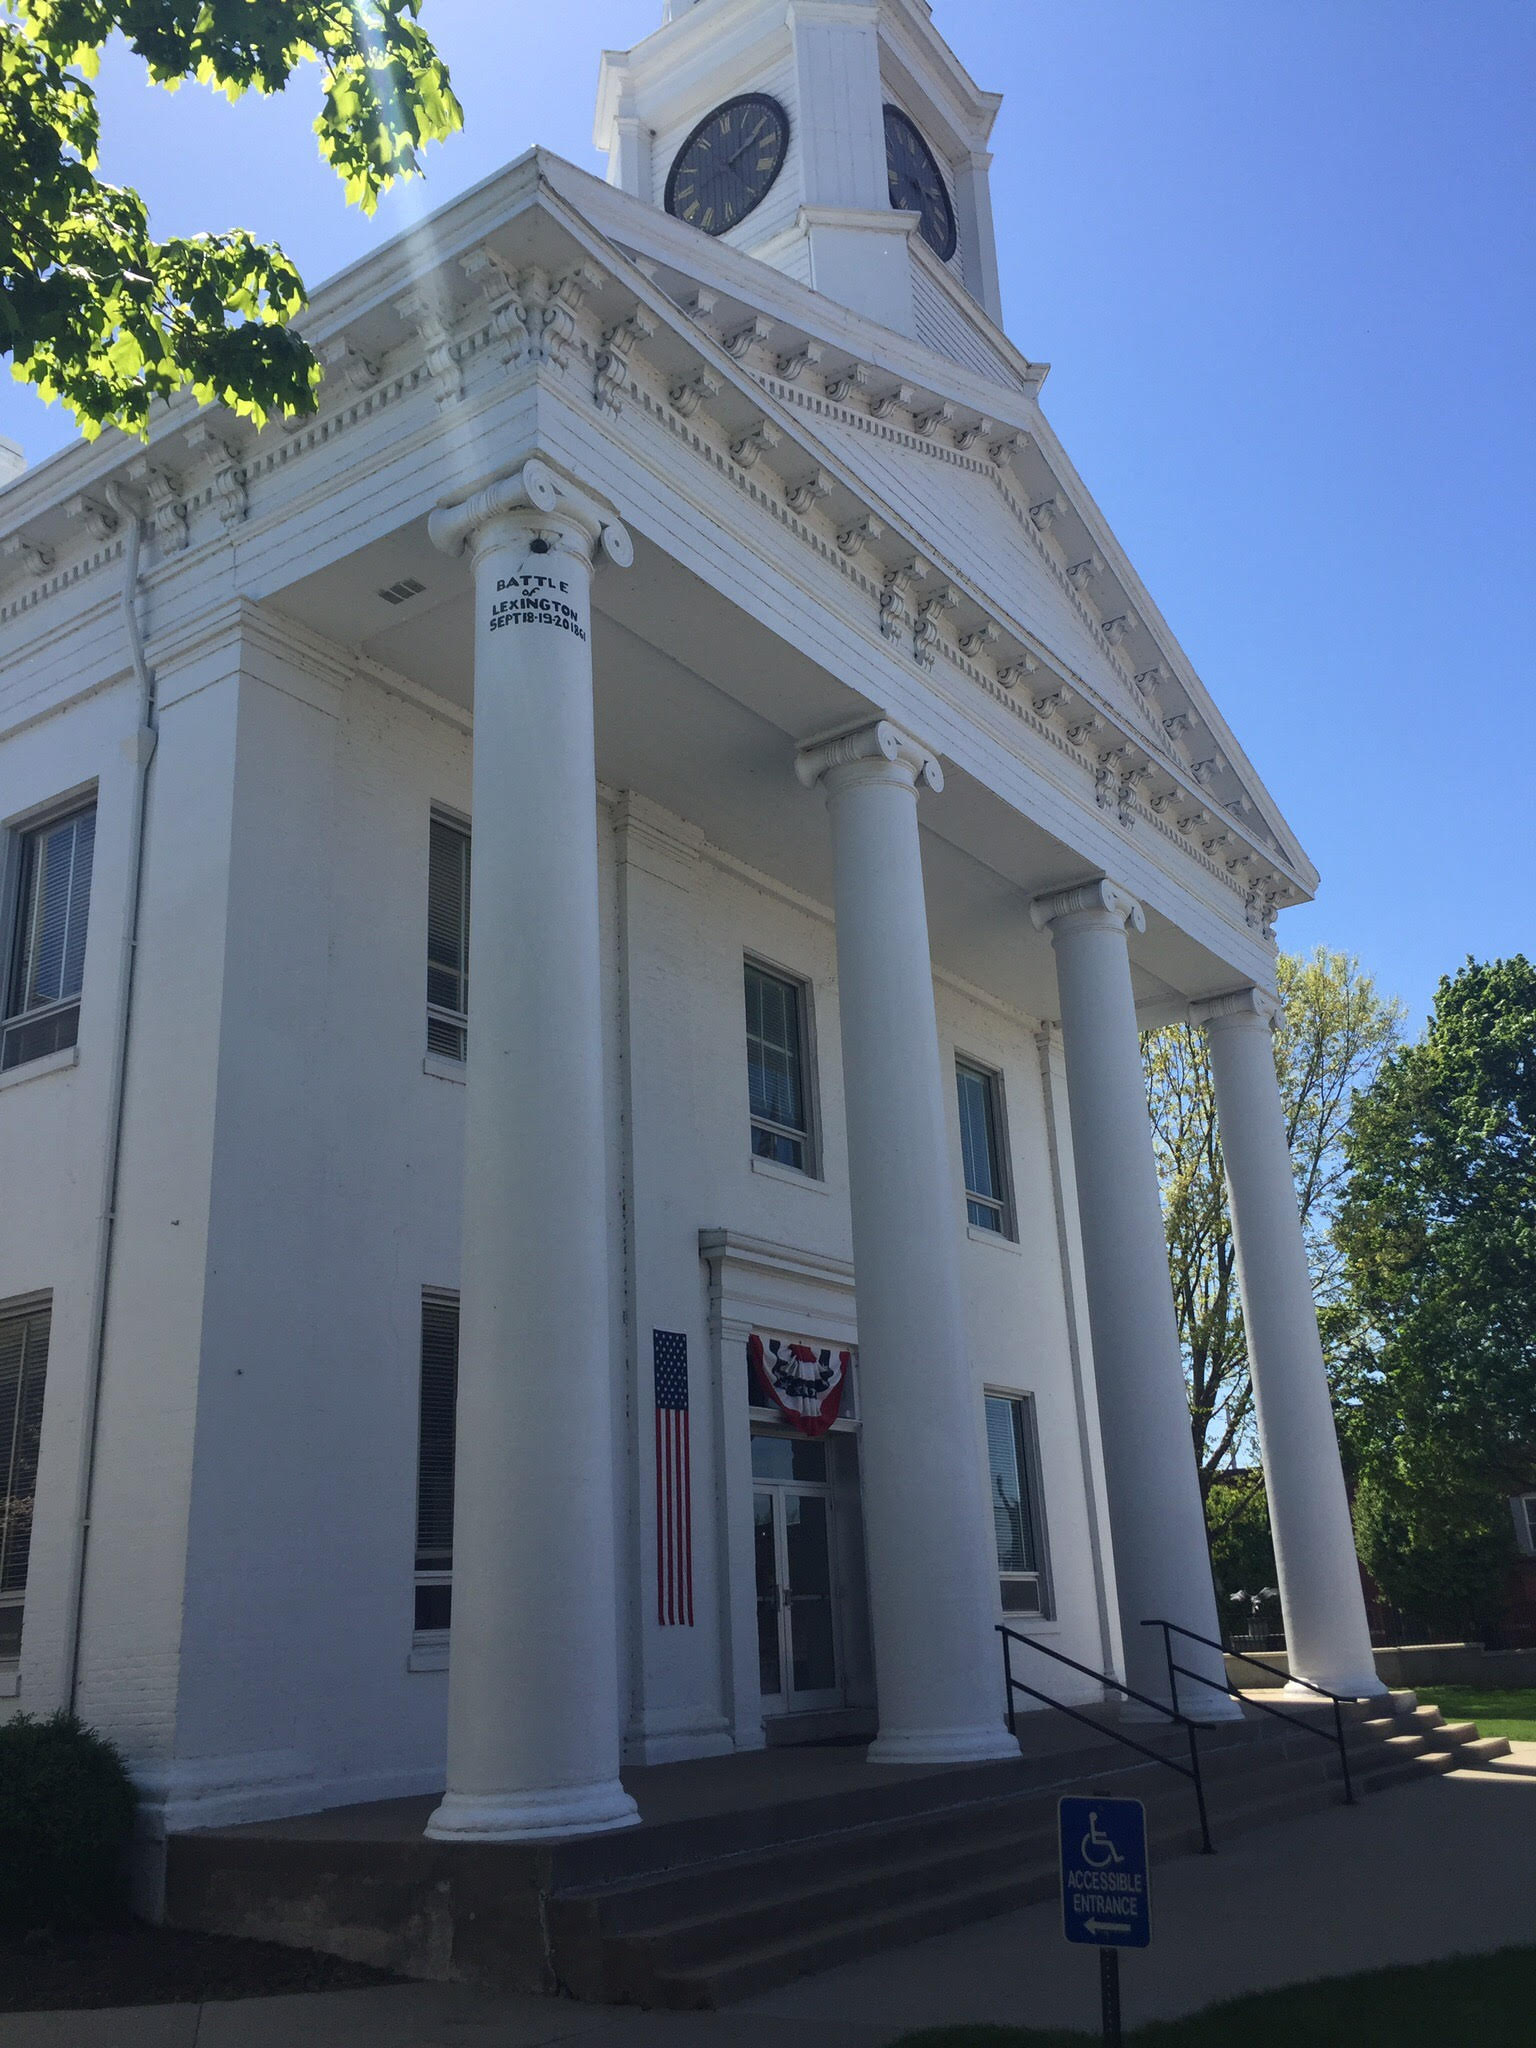 Lafayette County Courthouse was completed in 1847